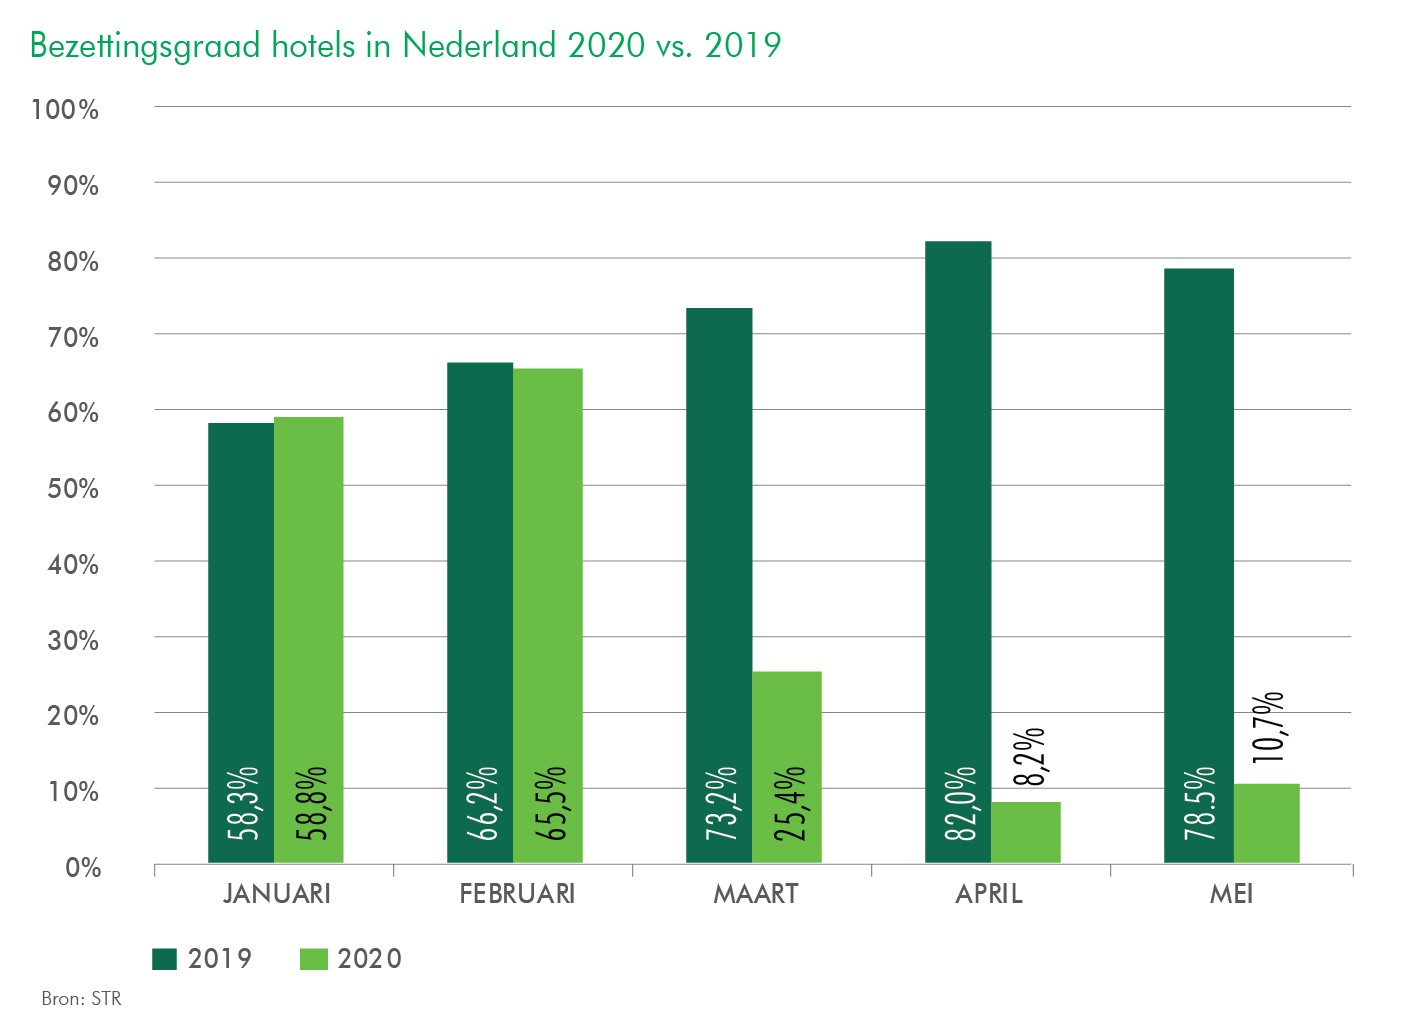 CBRE Hotels - Bezettingsgraad hotels Nederland 2019 vs 2020